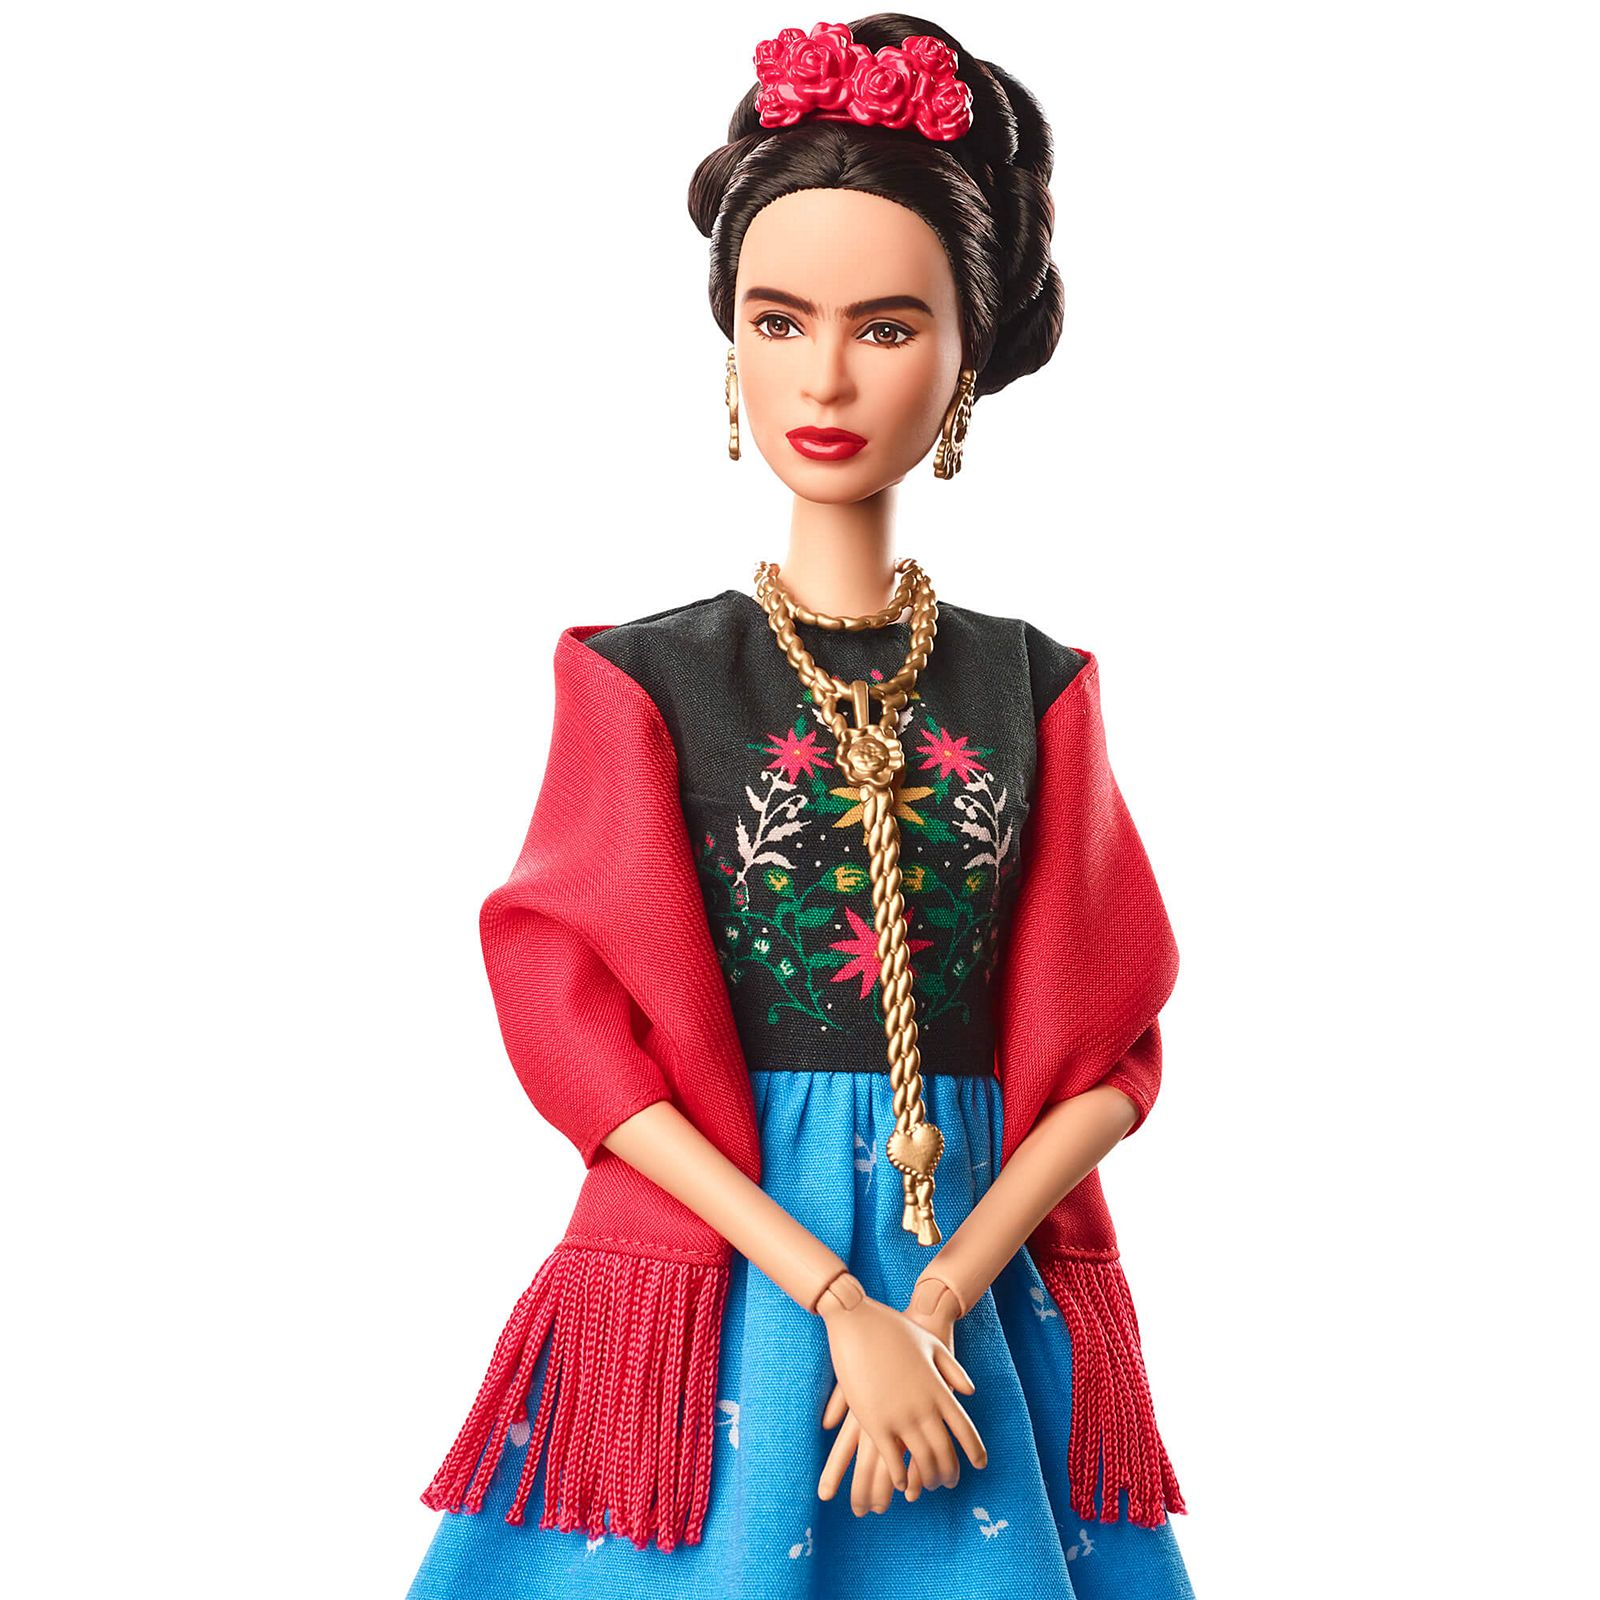 Frida Kahlo Barbie Doll Inspiring Women Series